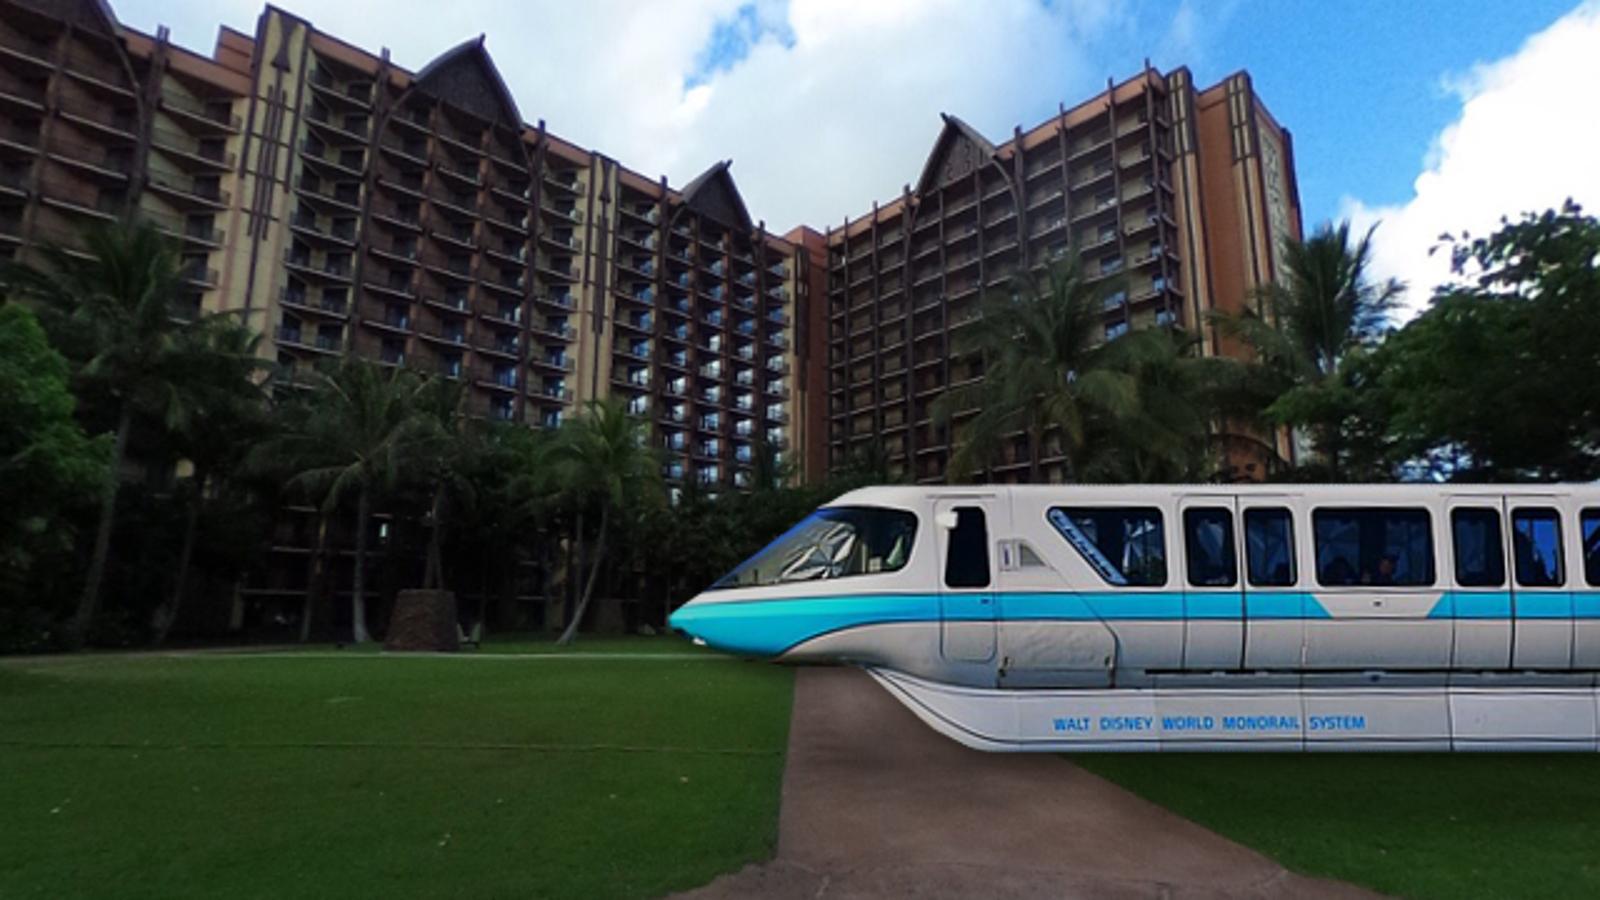 Monorail Blue visits Disney's Aulani Resort. Photo © 2018 Google Street View.